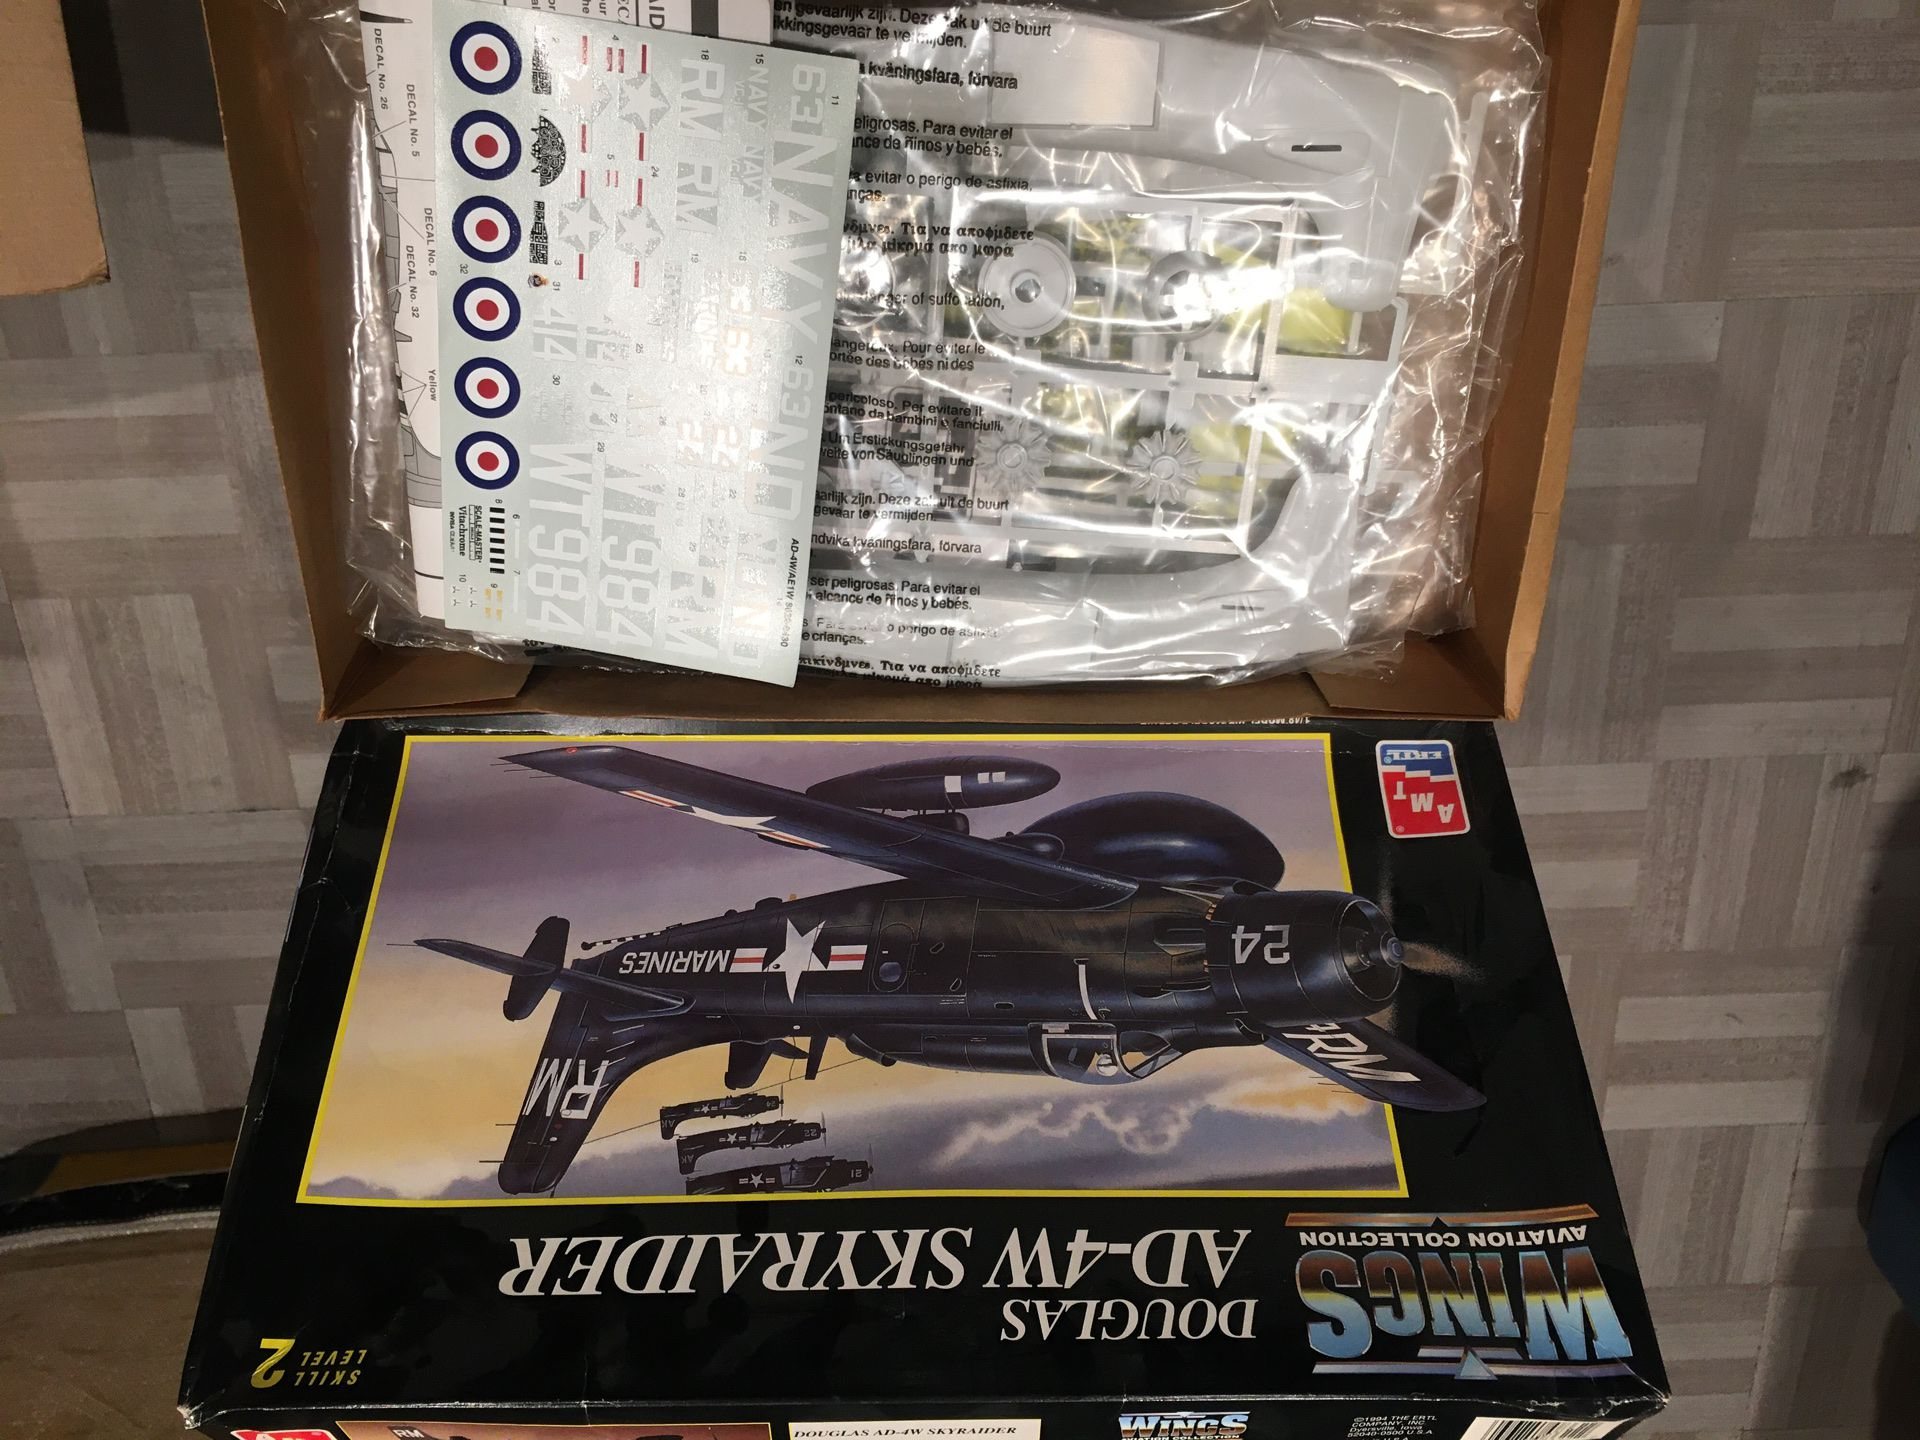 Douglas AD-4W skyraider - wings aviation collection